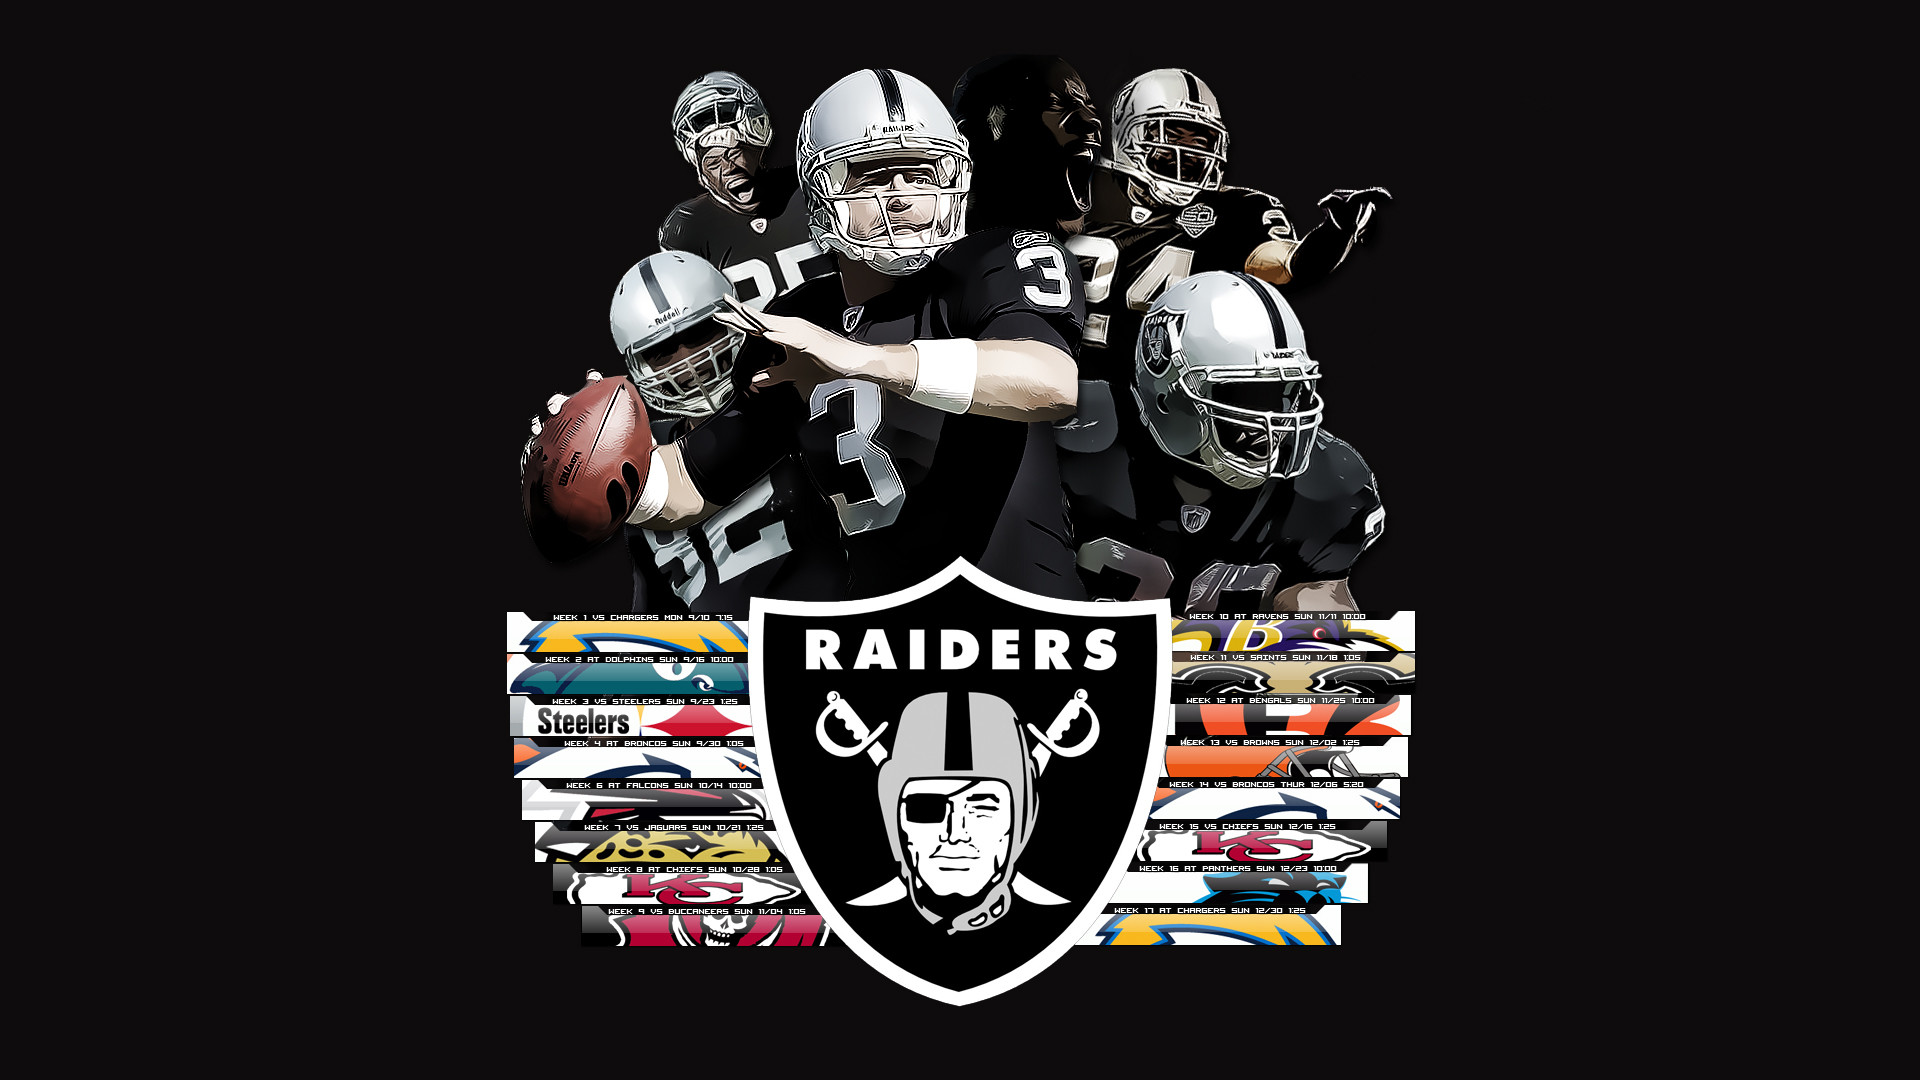 1920x1080 Raiders Wallpapers Free Download | Wallpapers 4k | Pinterest | Raiders  wallpaper and Wallpaper